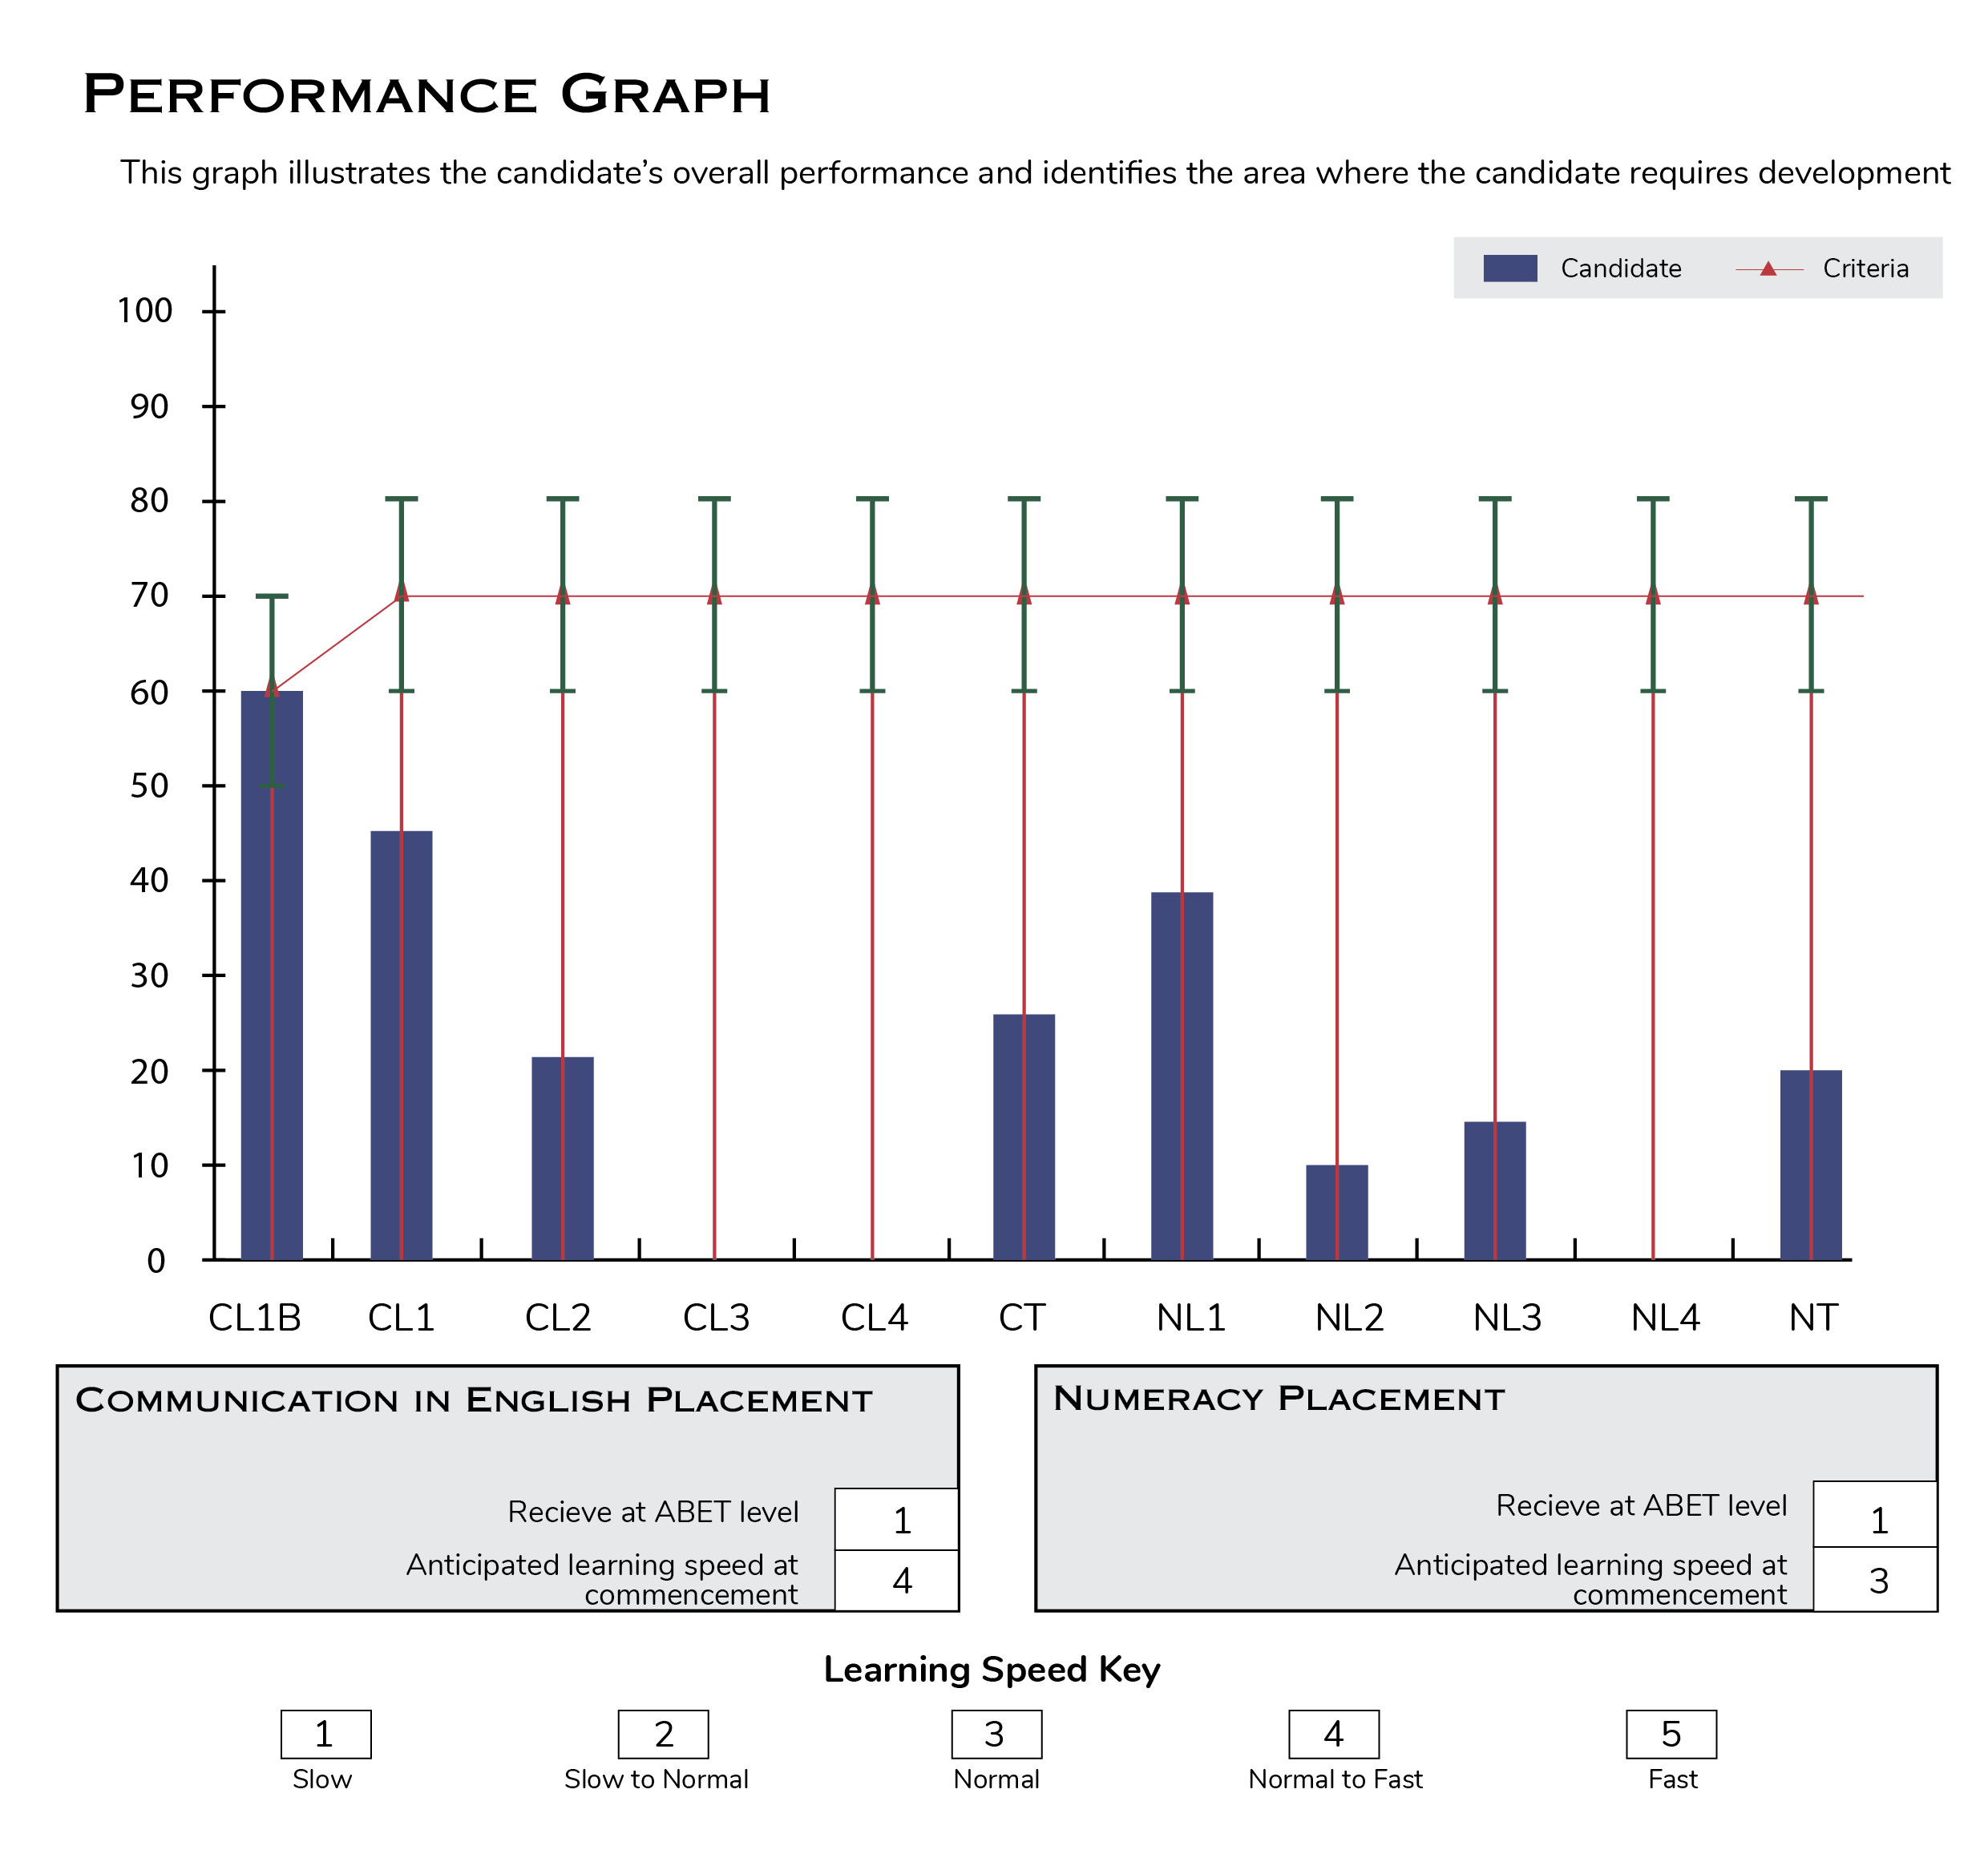 assessment performance graph 1